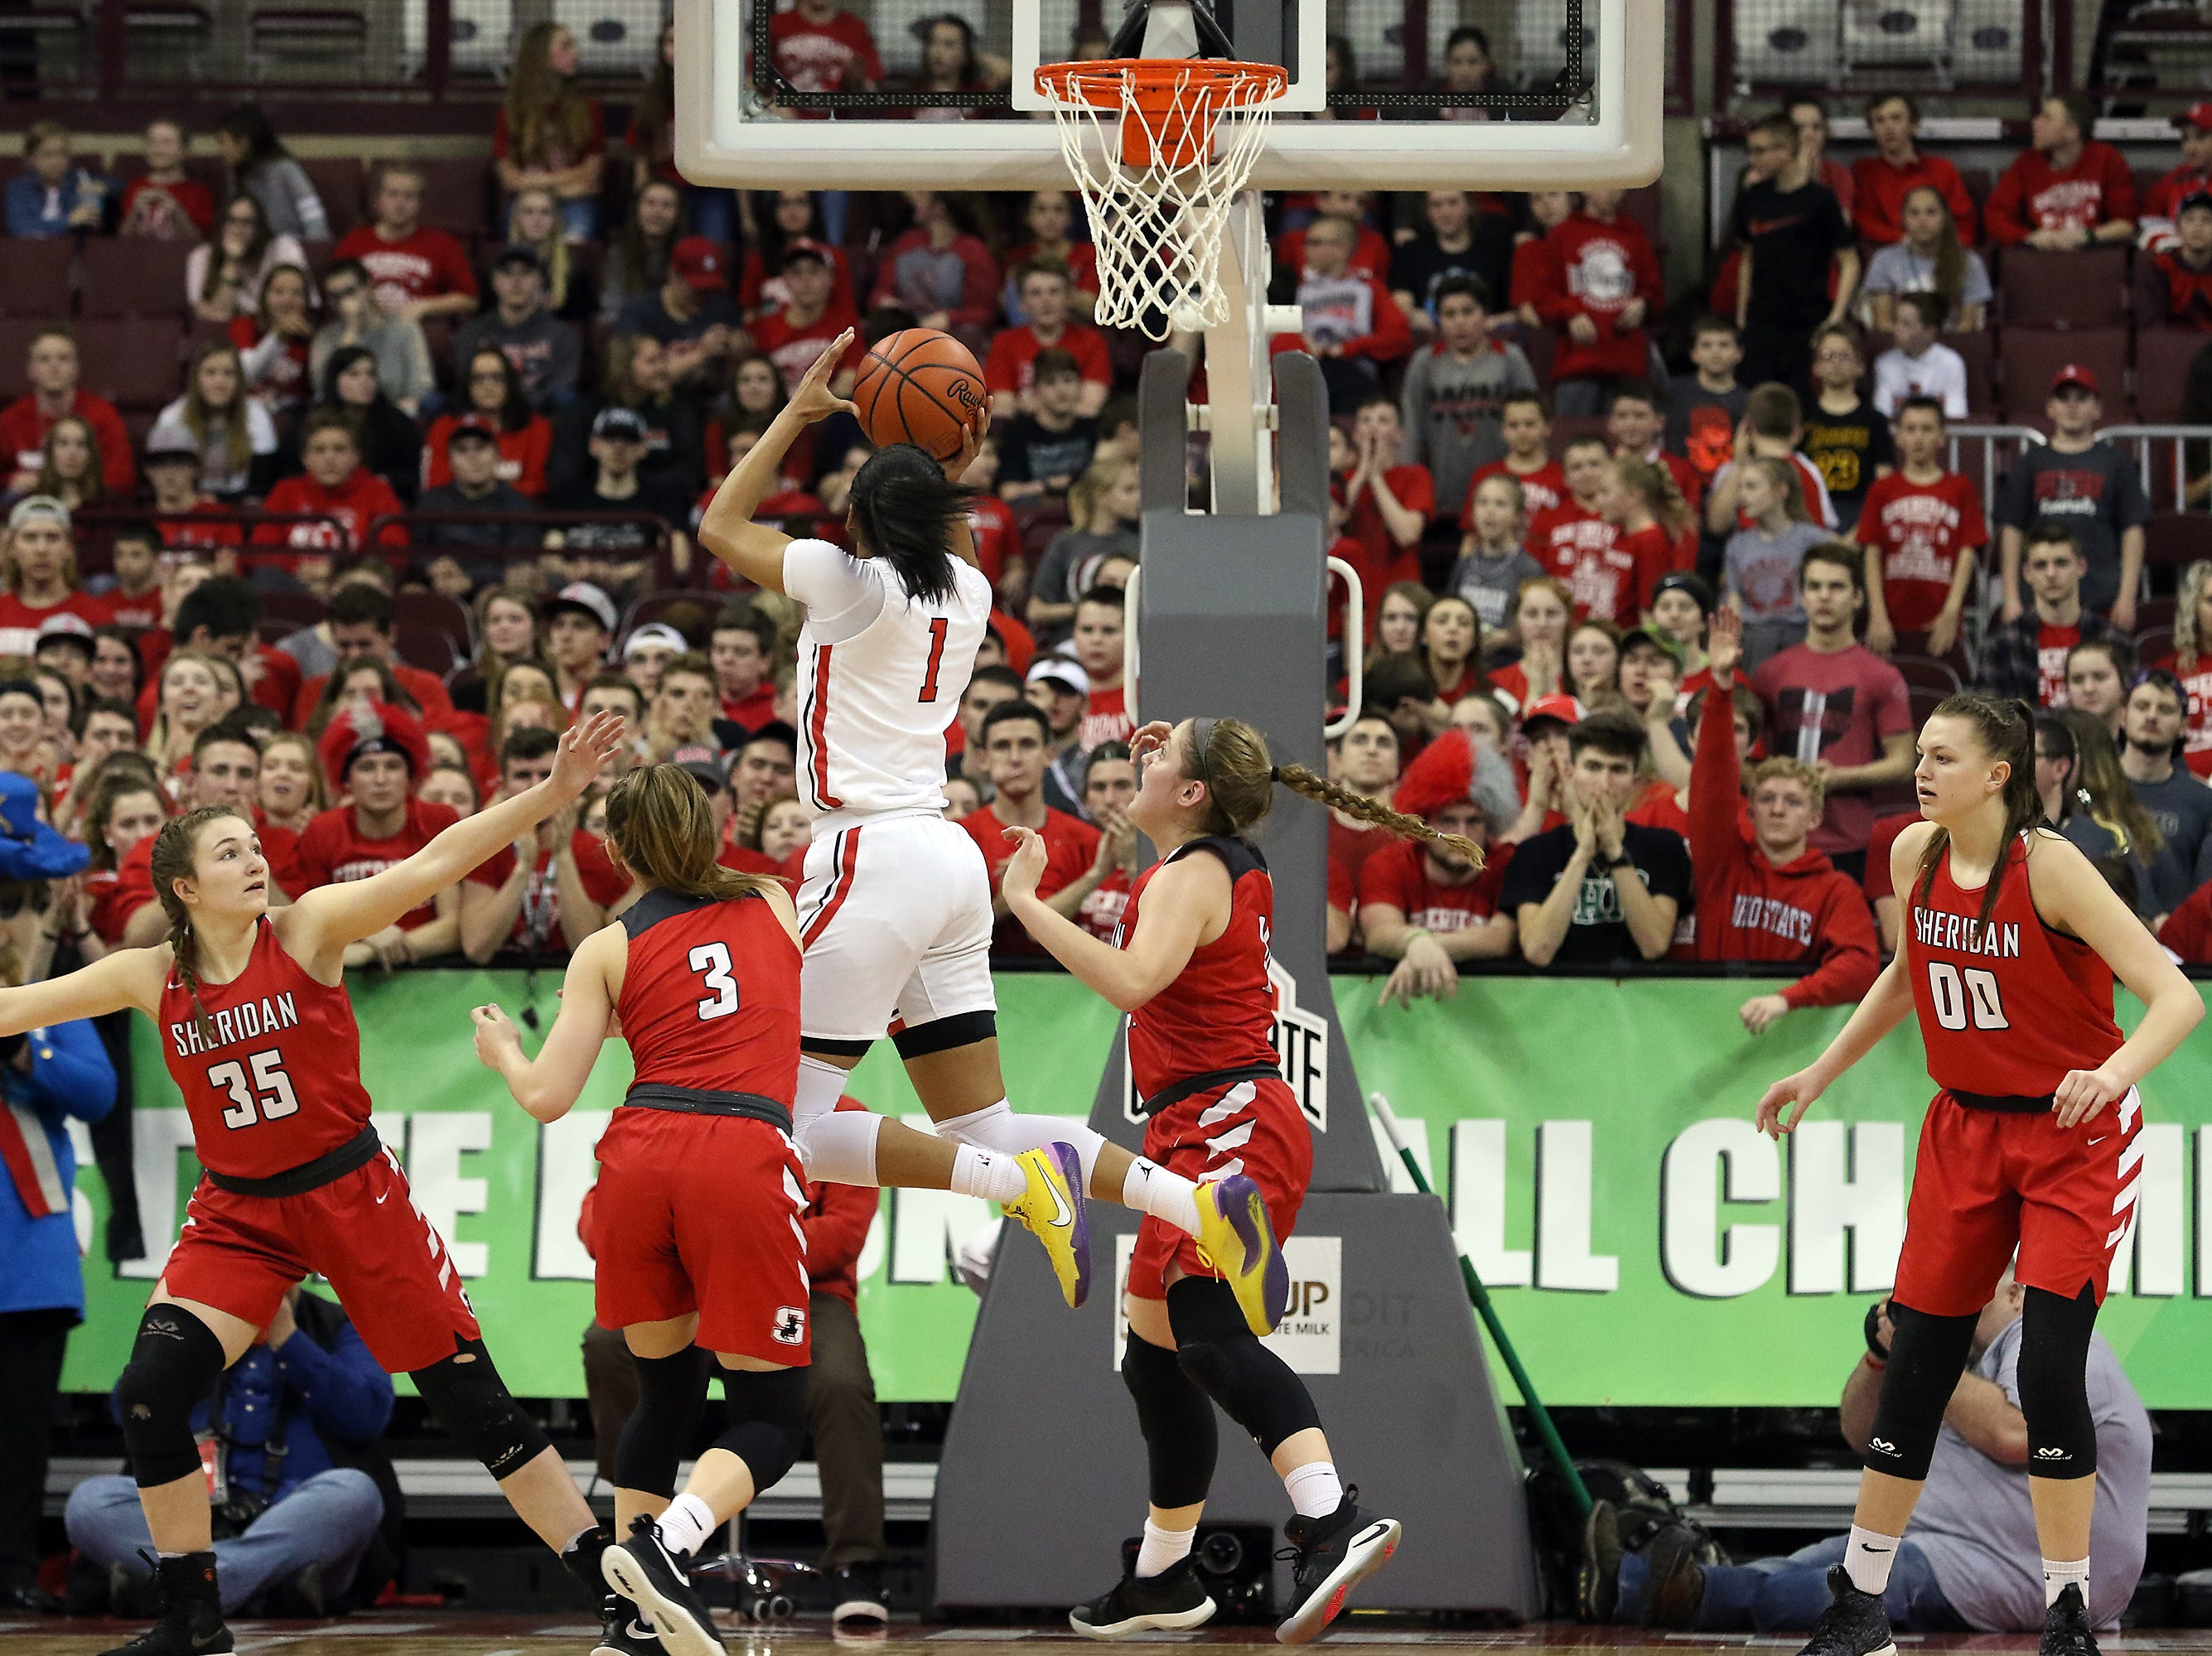 Toledo Rogers' Zia Cooke puts up a shot against Sheridan during the DII state semis in Columbus on Thursday.